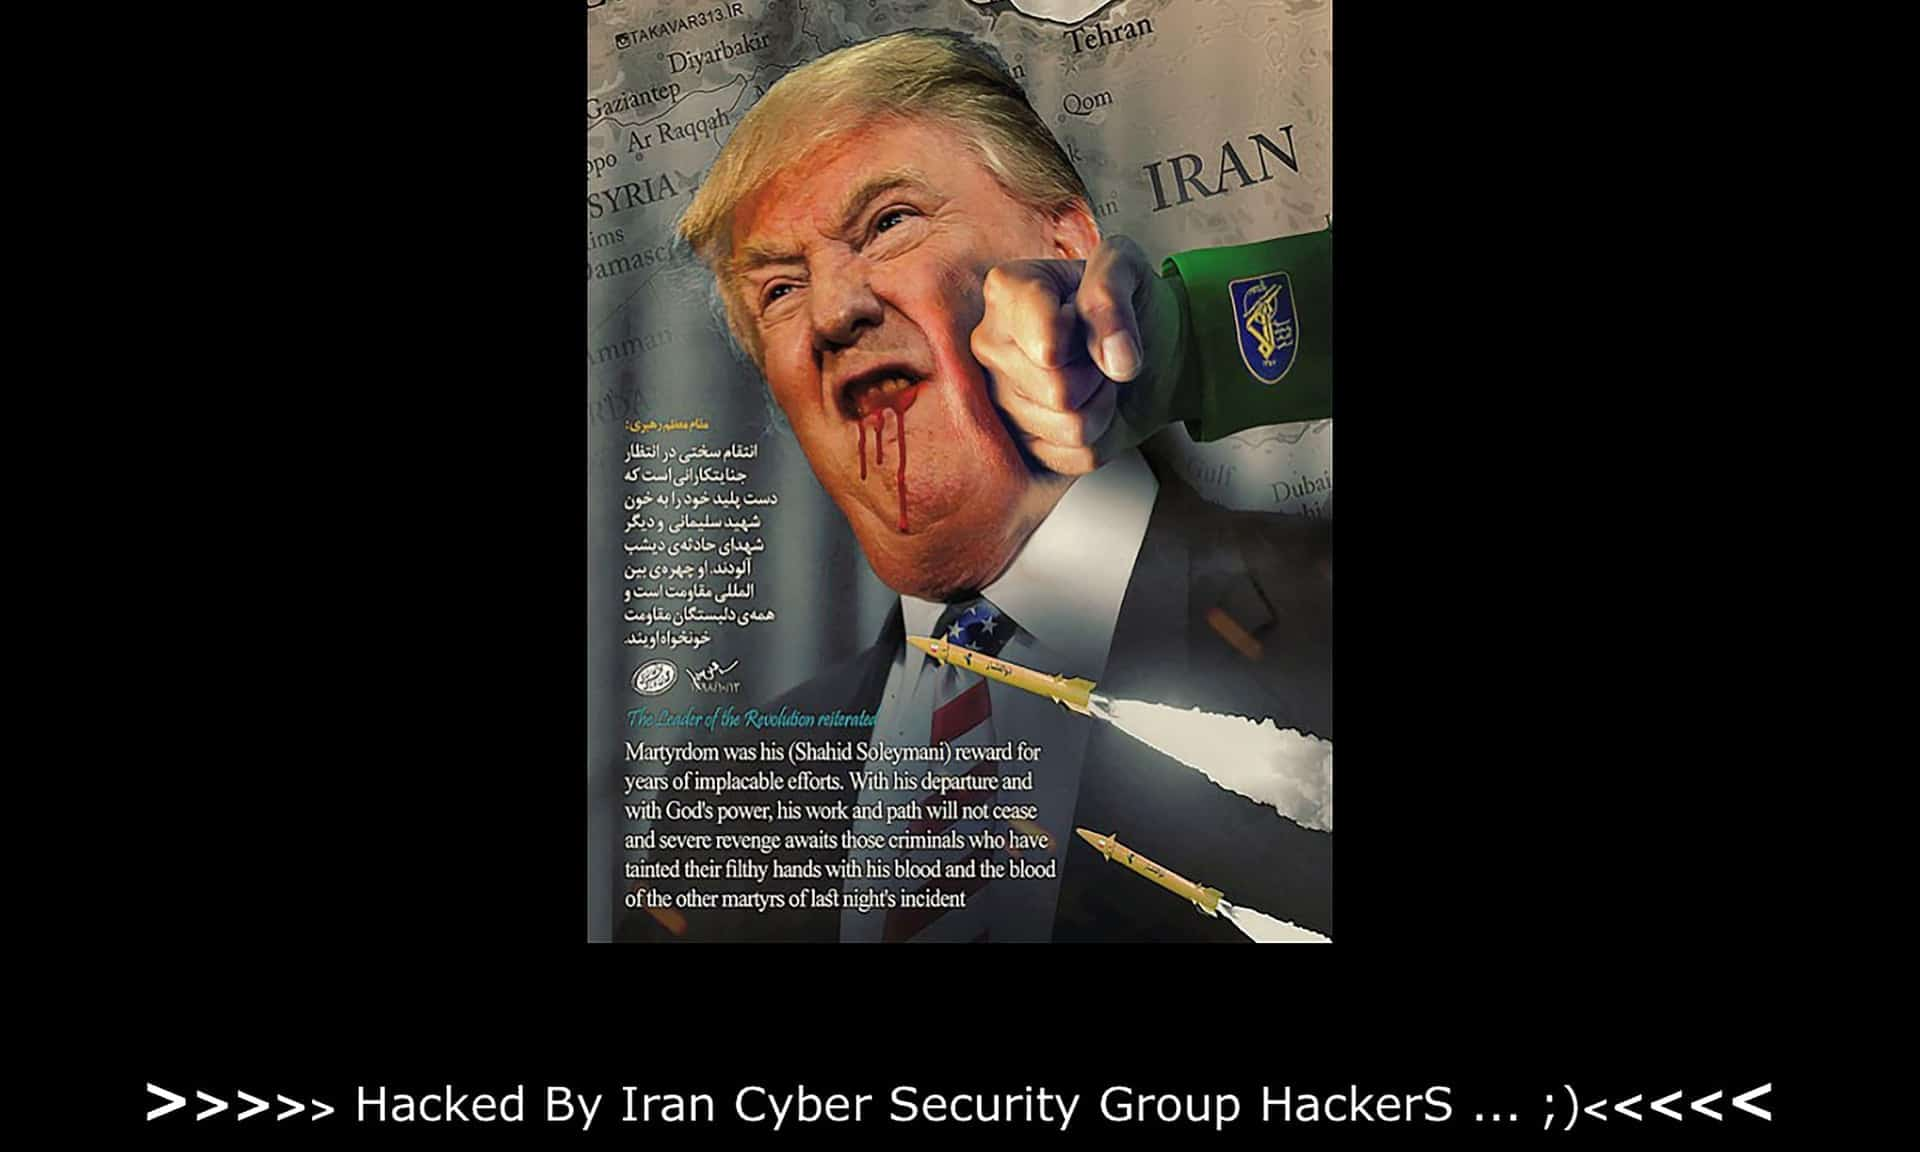 Hacked by Iran CyberSecurity Group Hackers